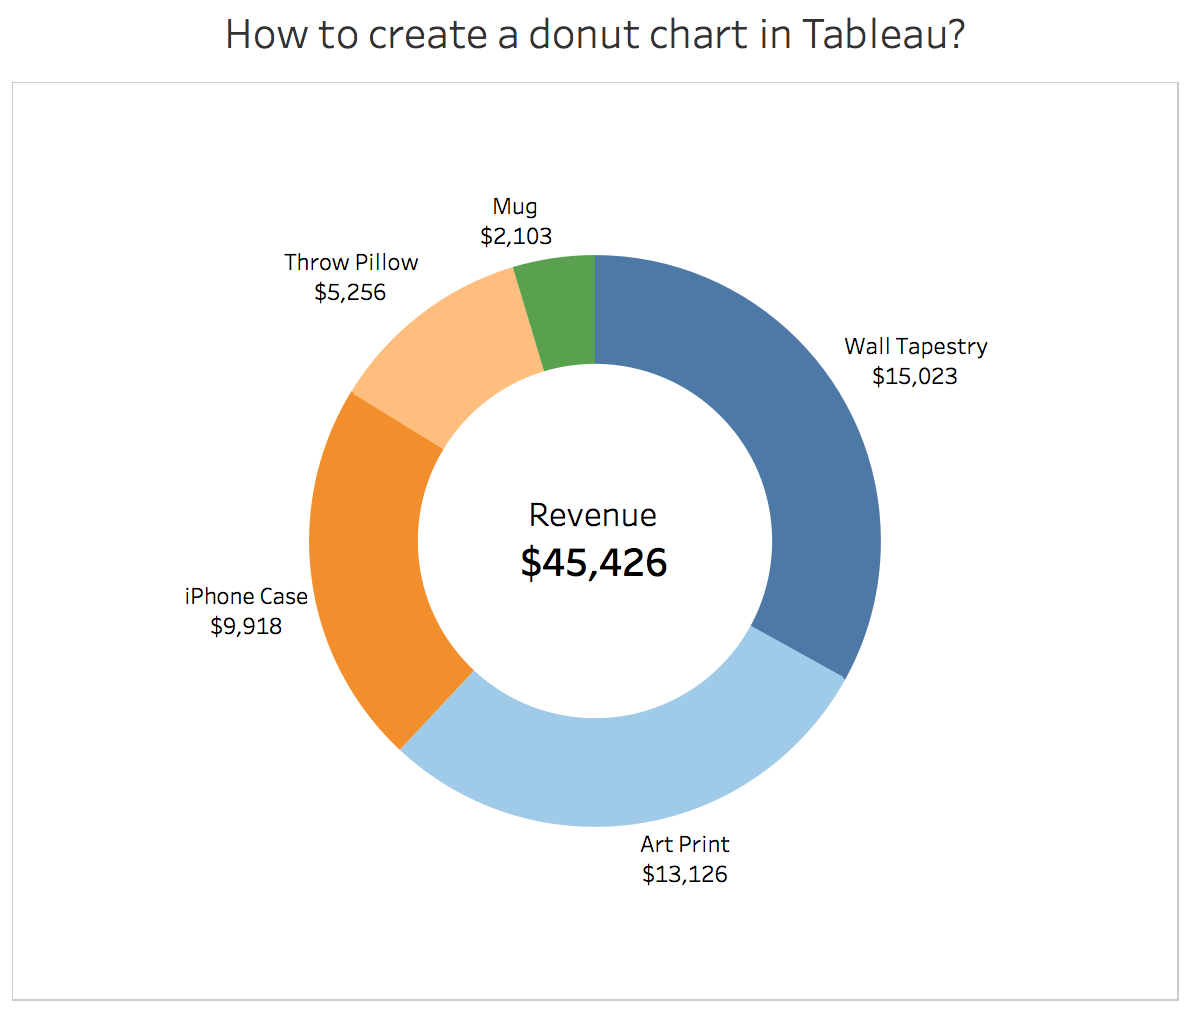 How to create a donut chart in tableau nikki yu posted on july 28 2017 july 28 2017 by nikki yu nvjuhfo Image collections